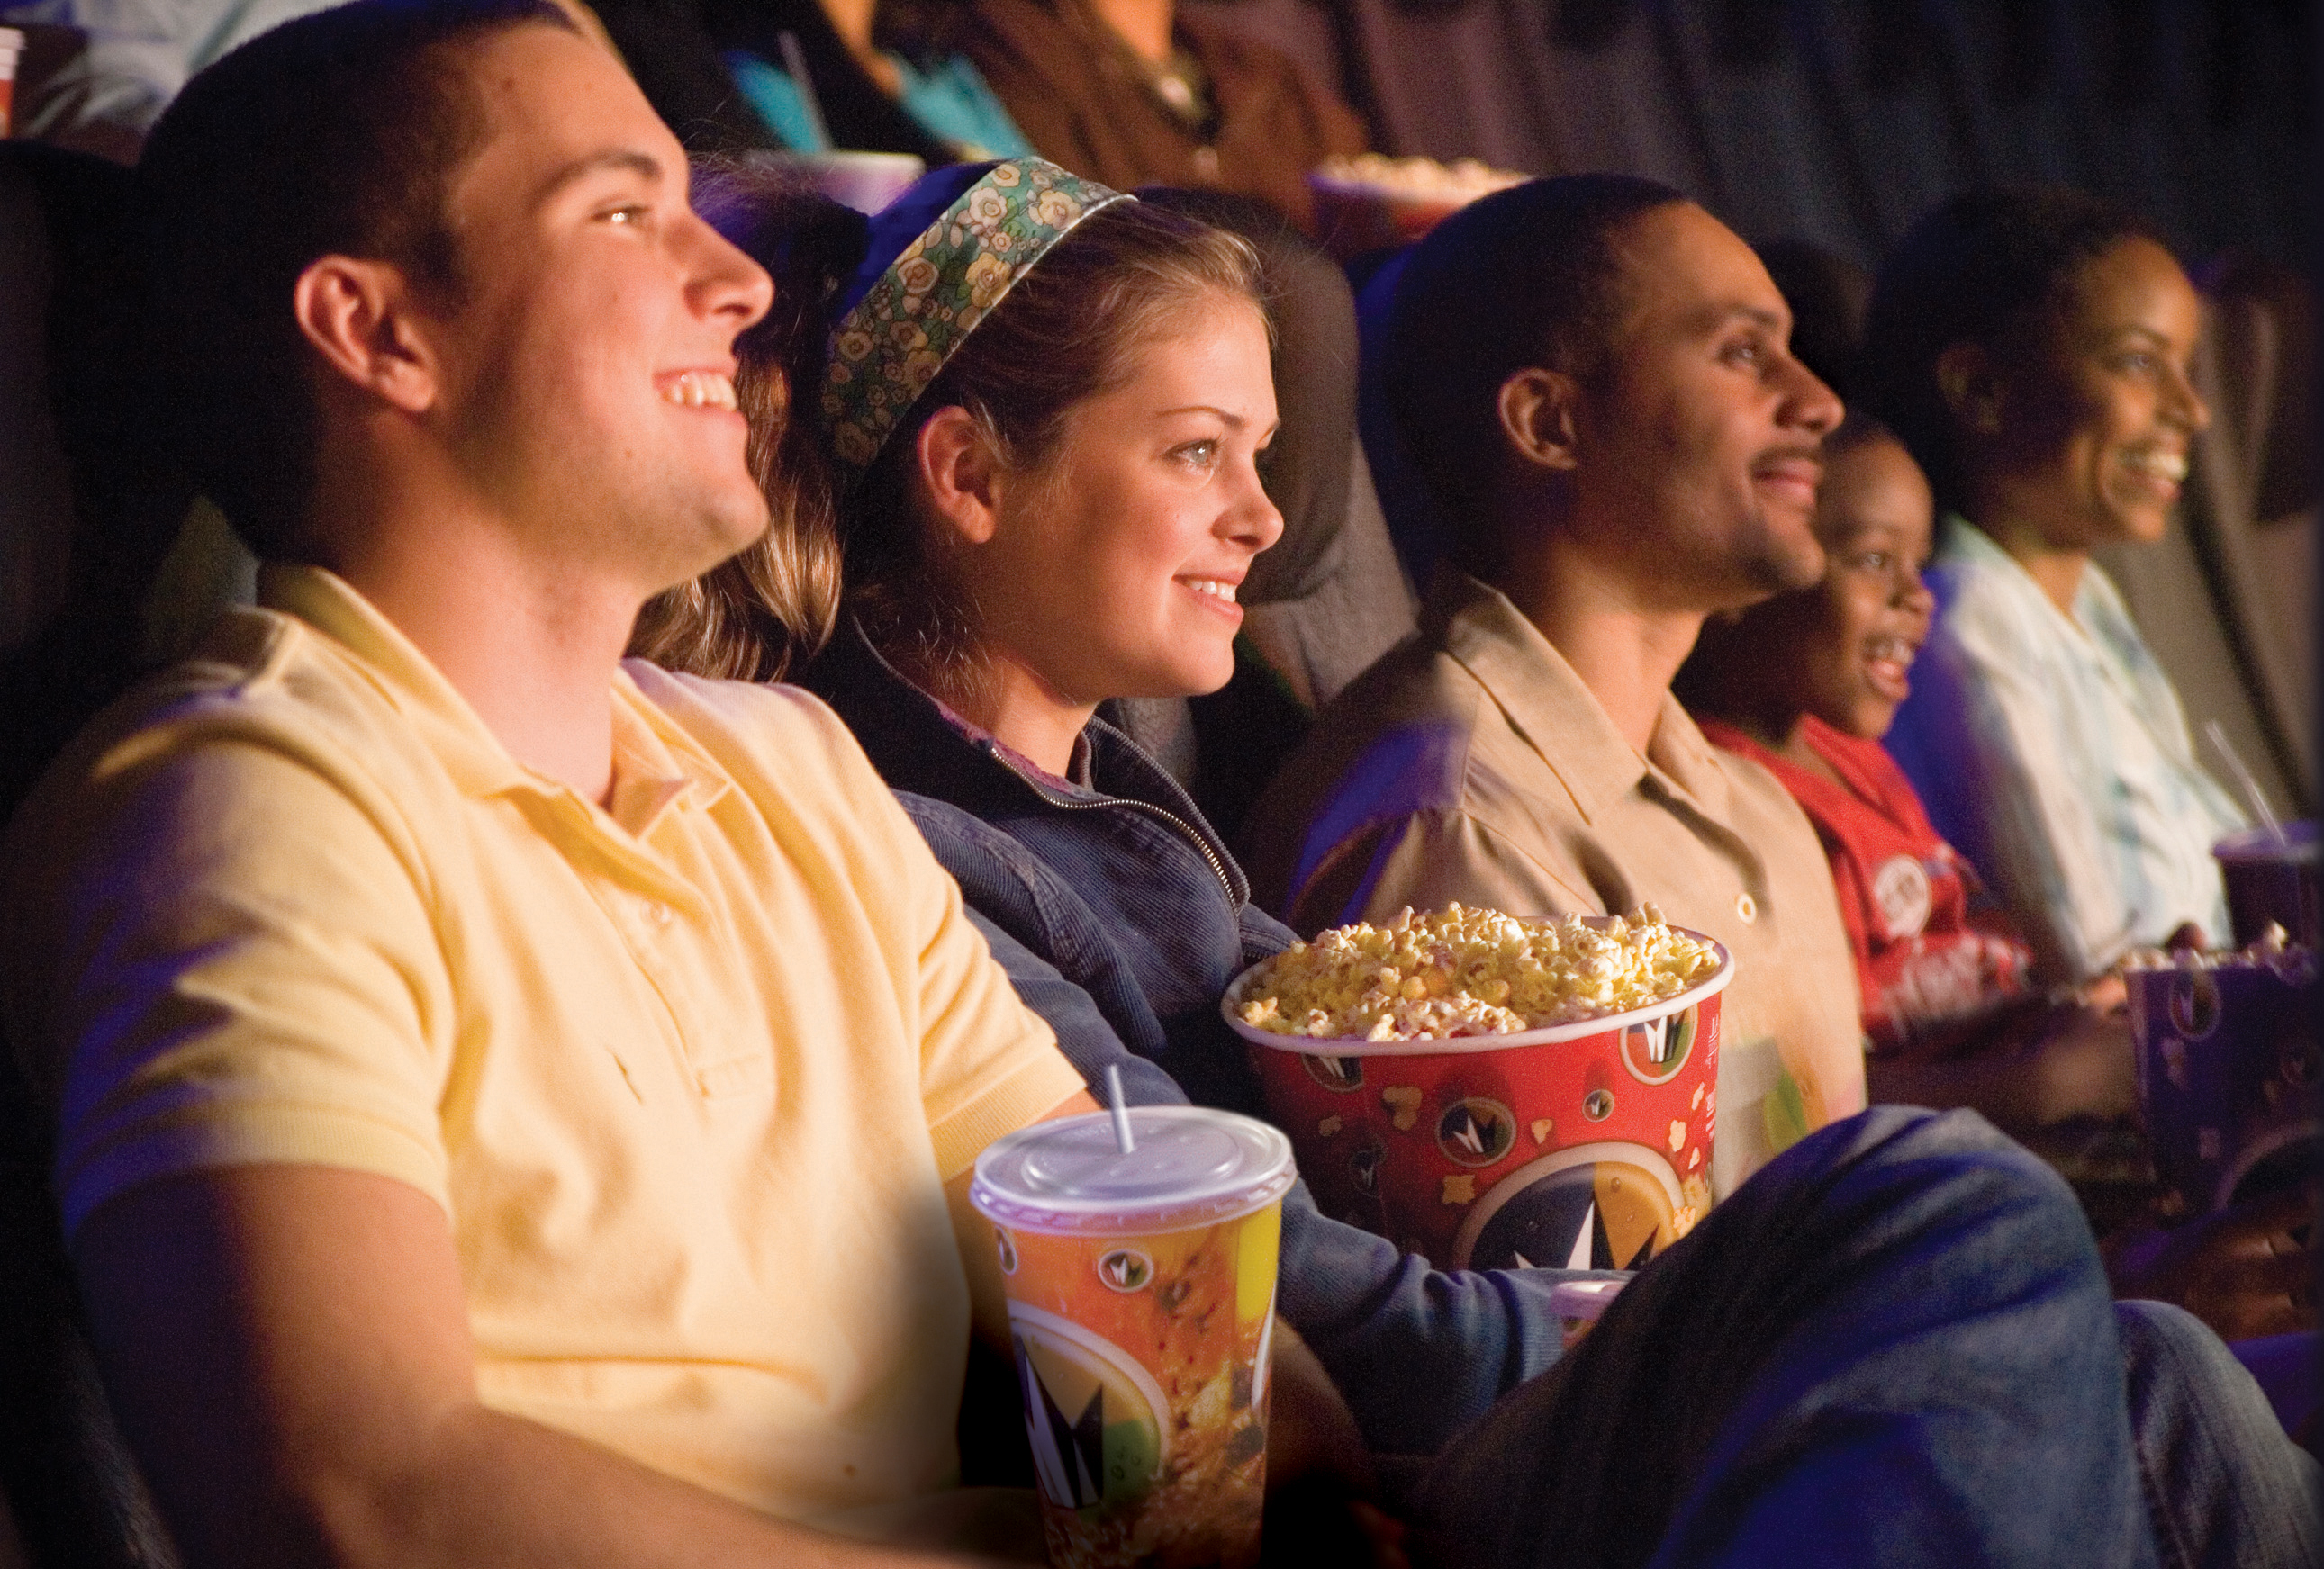 Regal Cinemas is named Movie Theatre Brand of the Year according to the 2014 Harris Poll EquiTrend® Study. Source: Regal Entertainment Group